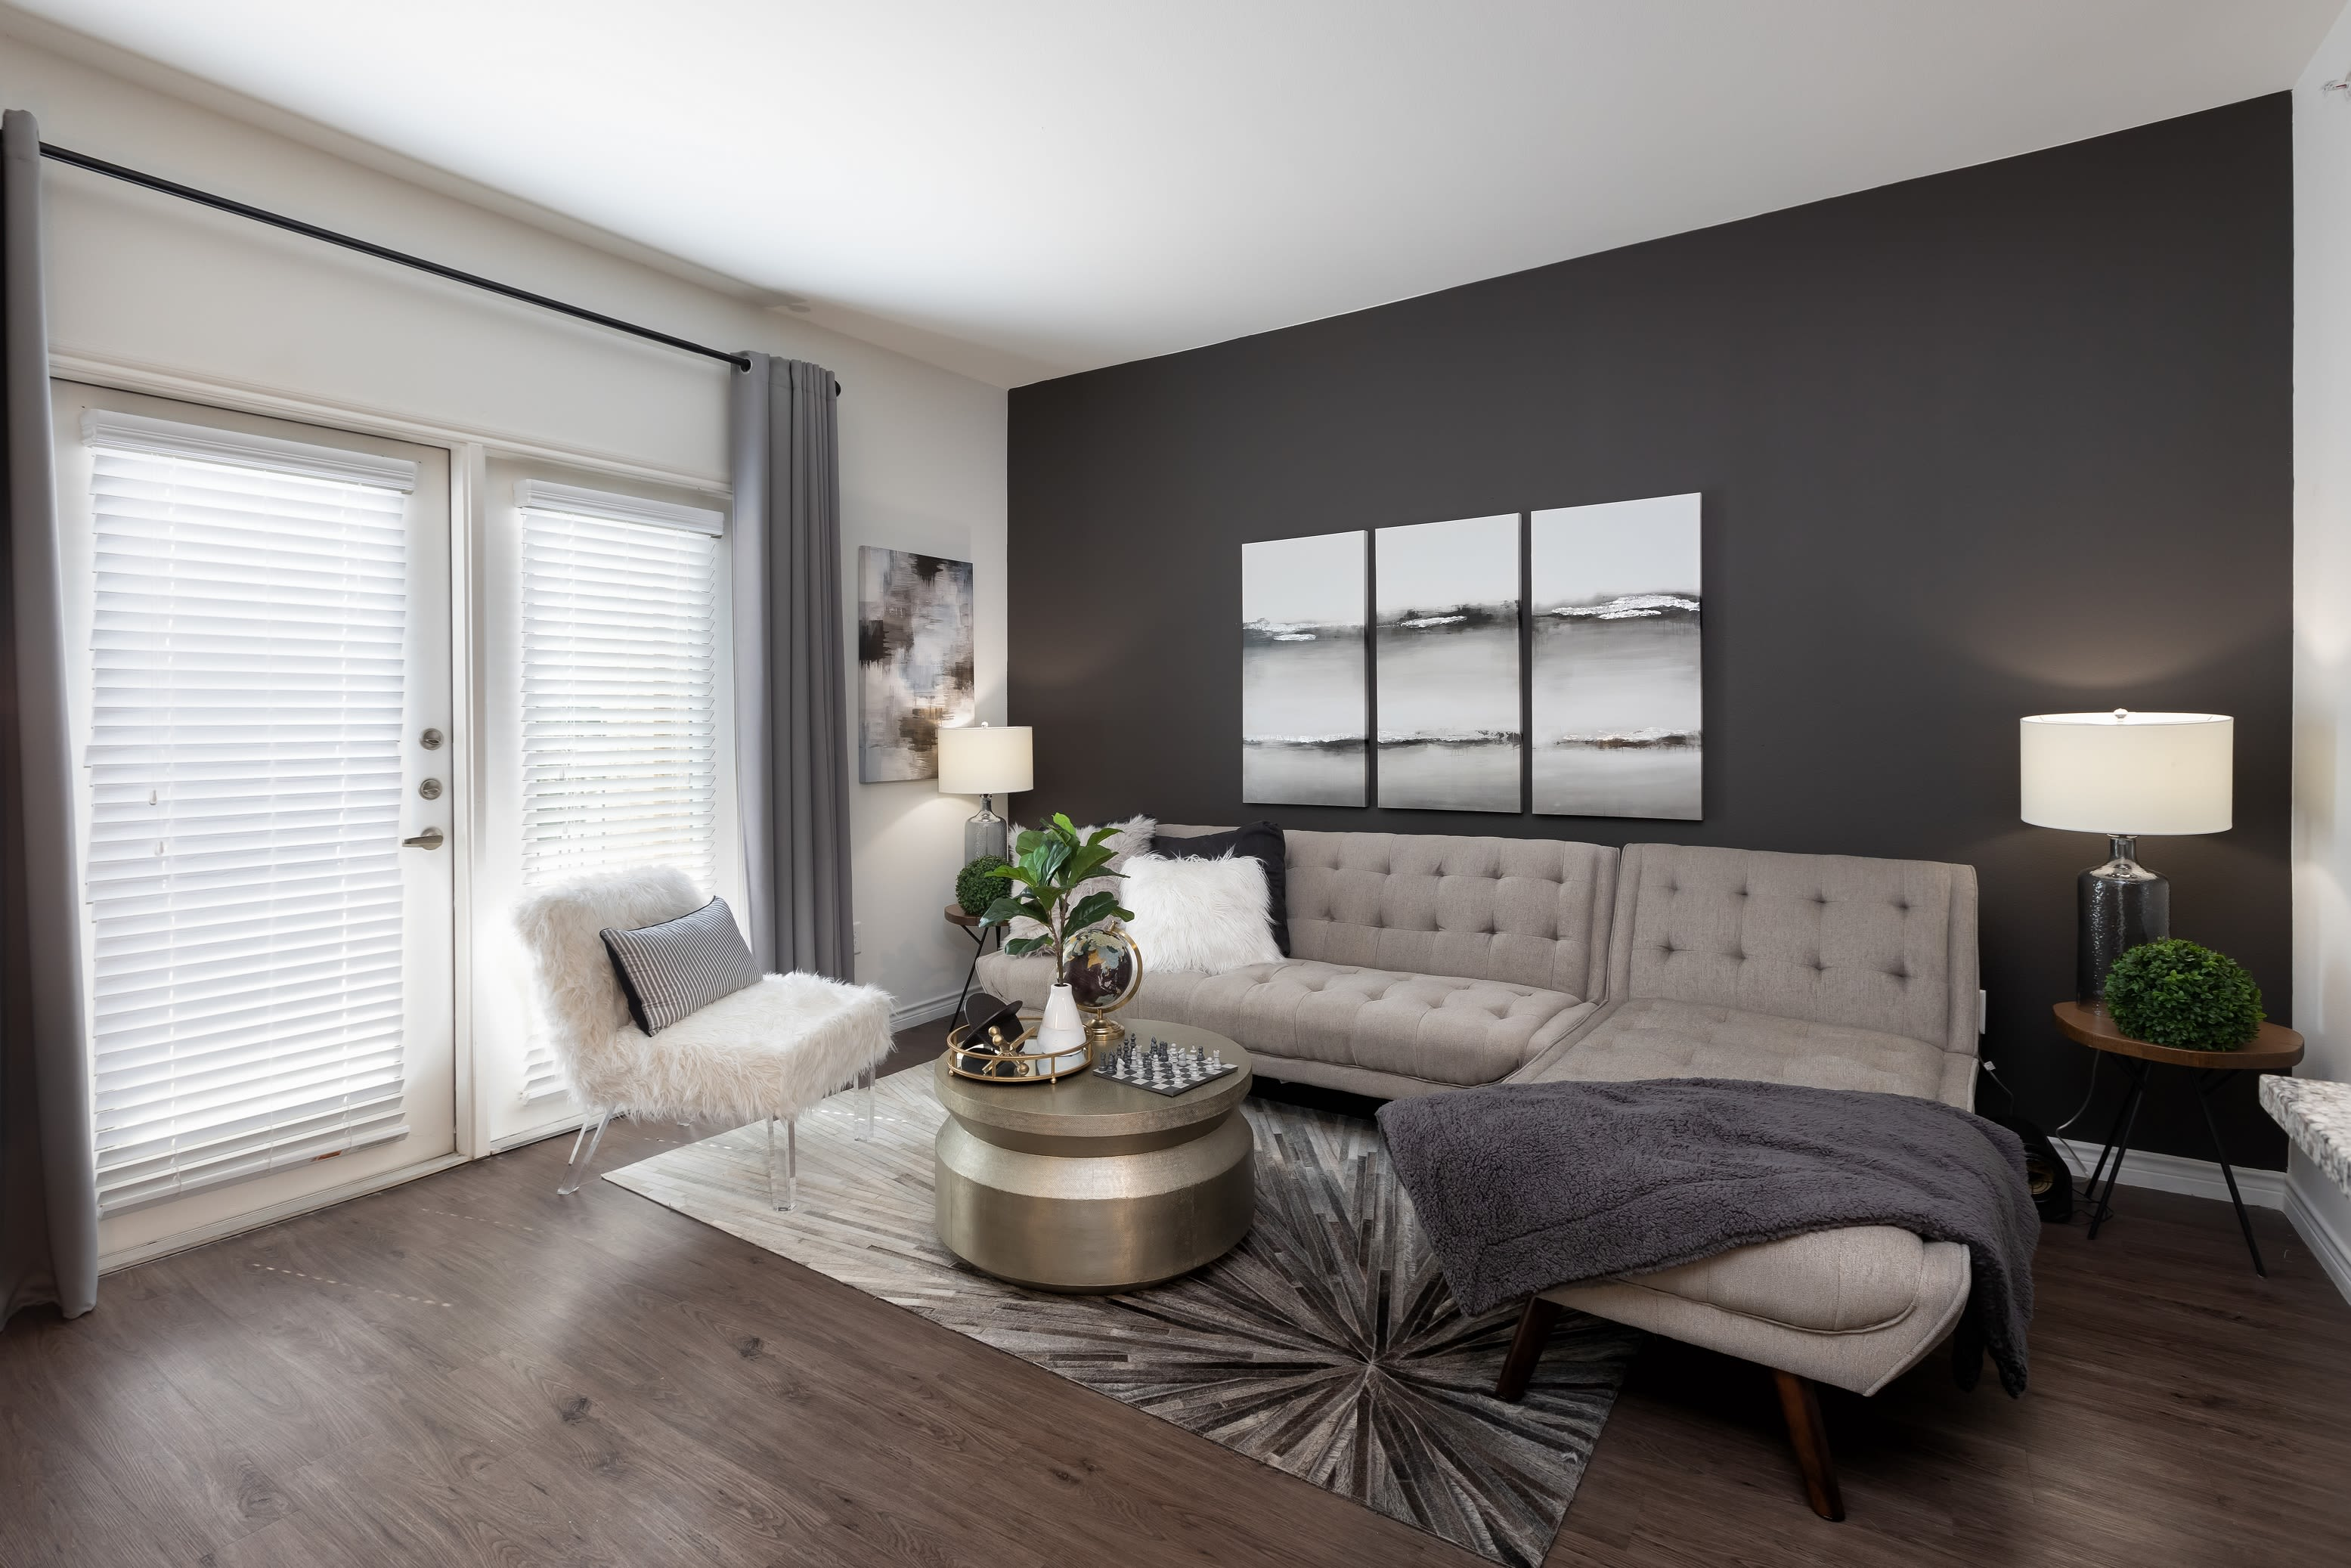 A furnished living room in a model apartment at 4 Corners Apartments in Frisco, Texas